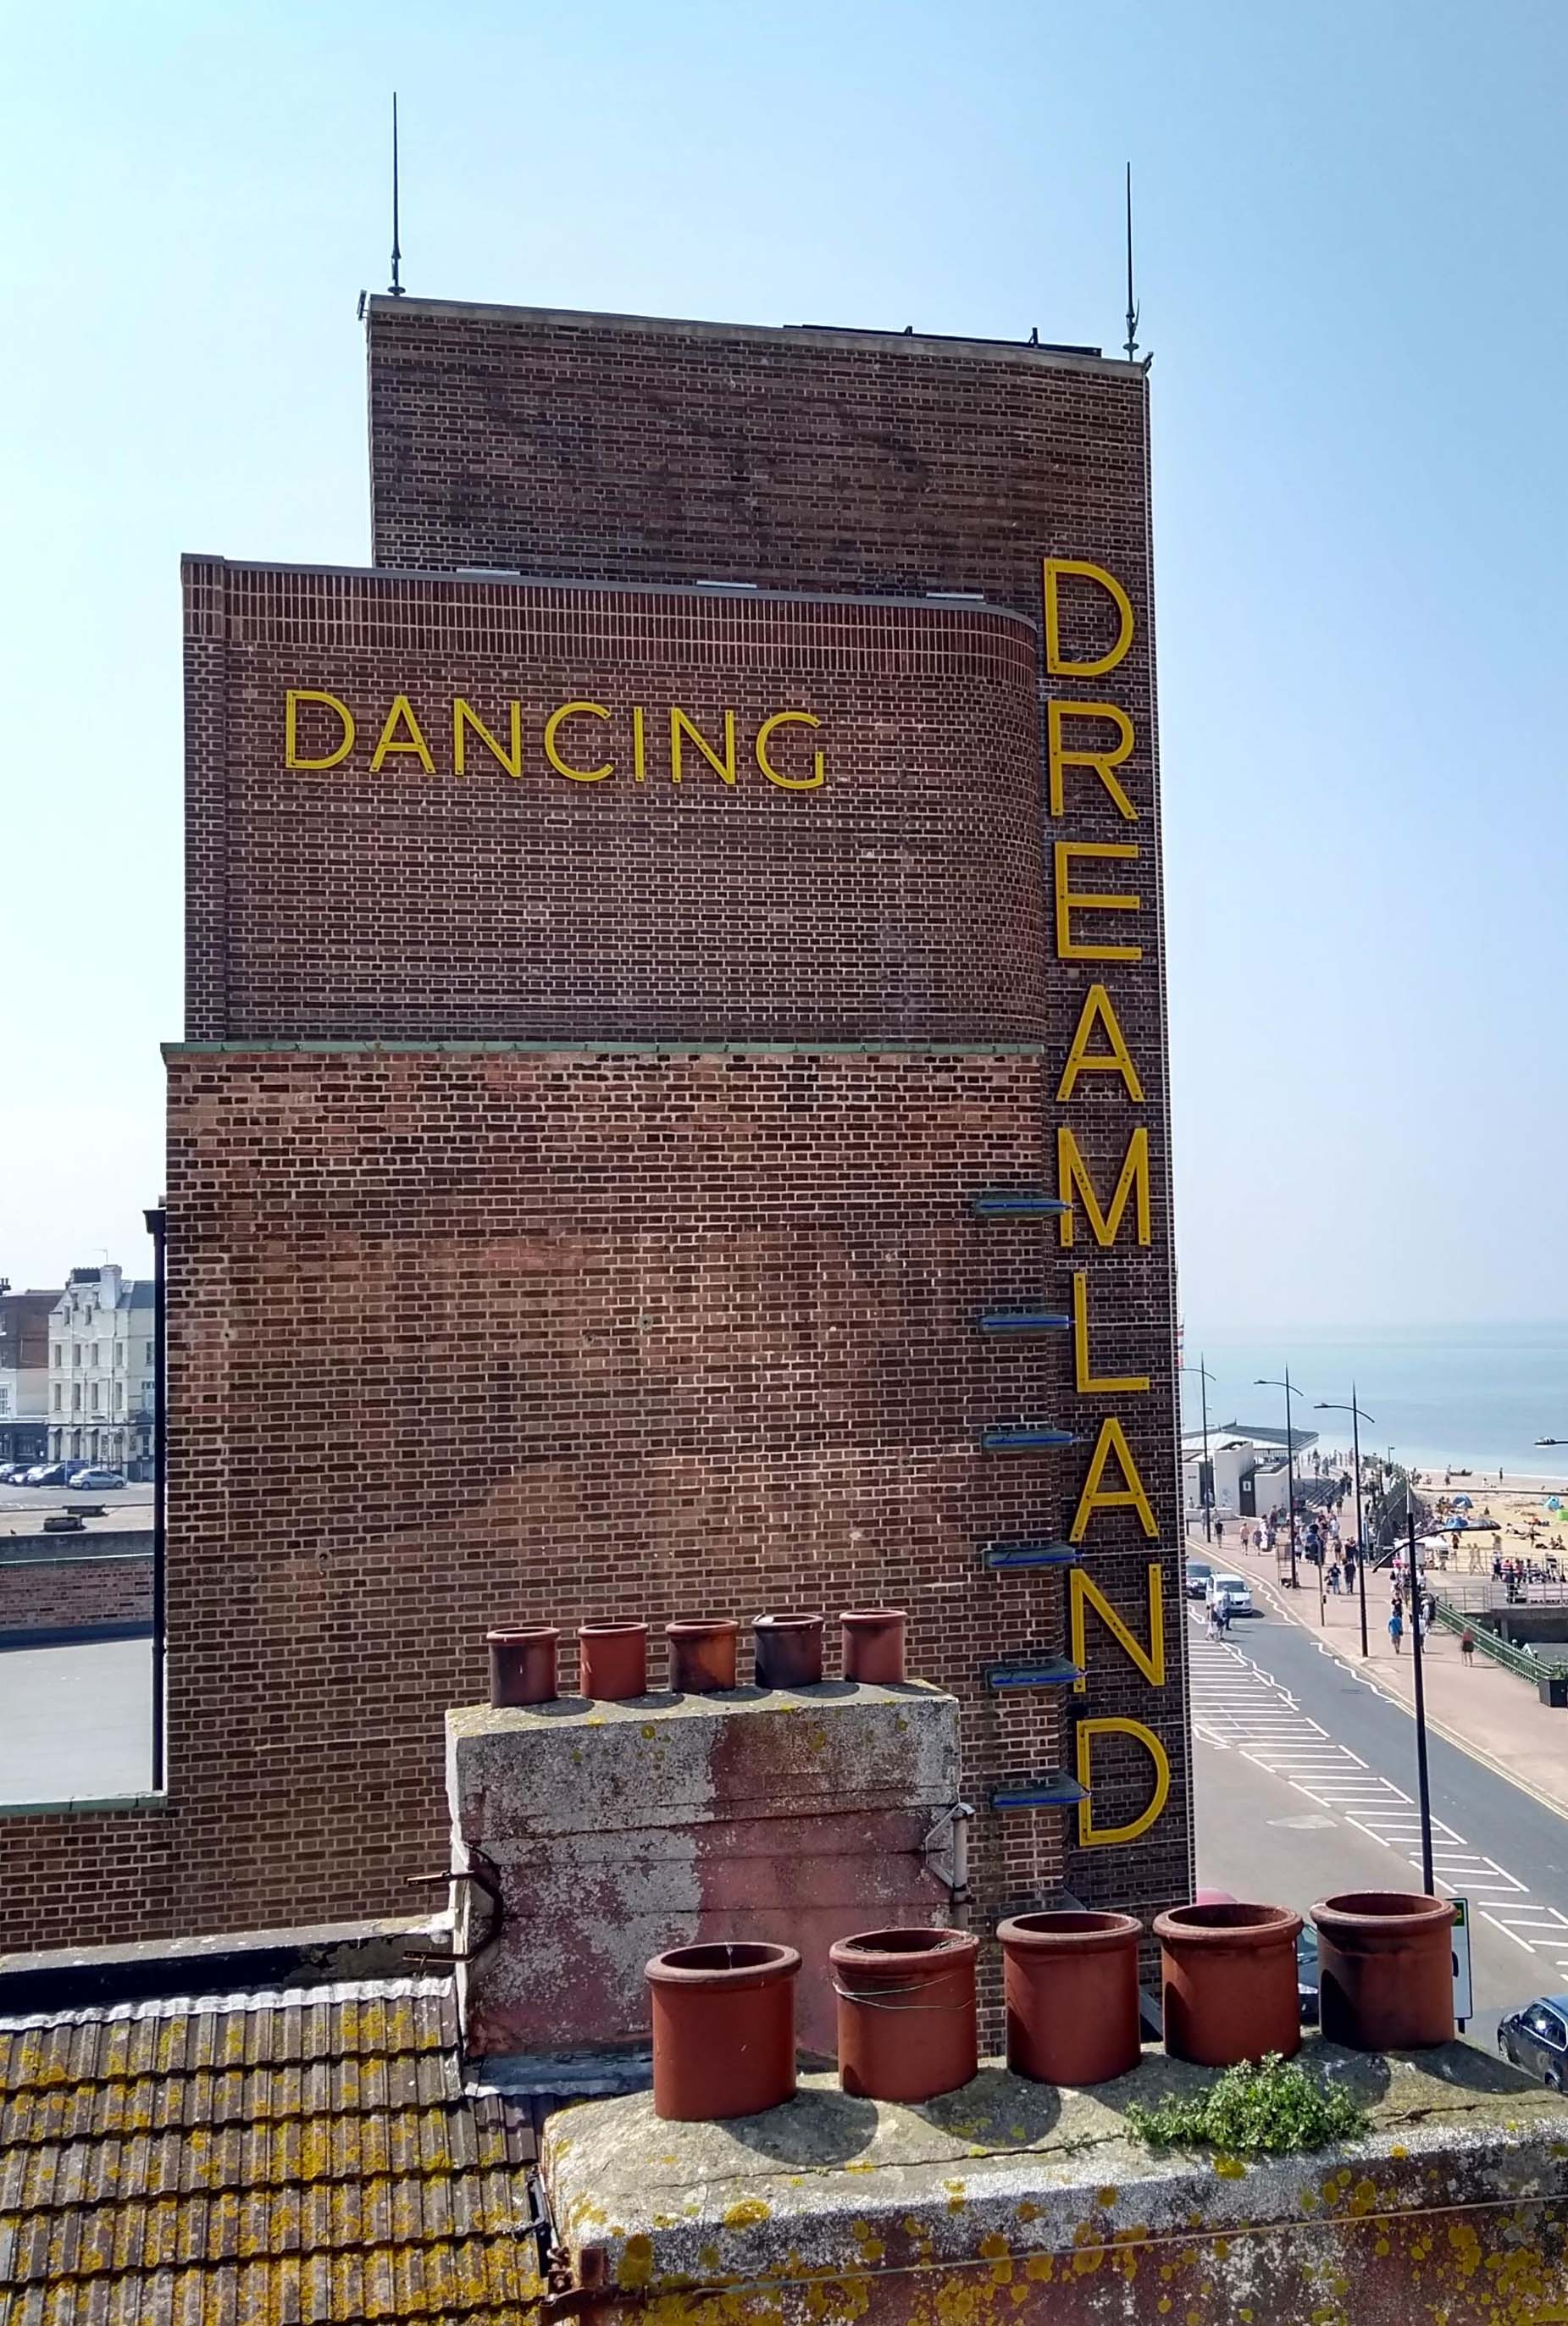 Dancing Dreamland sign